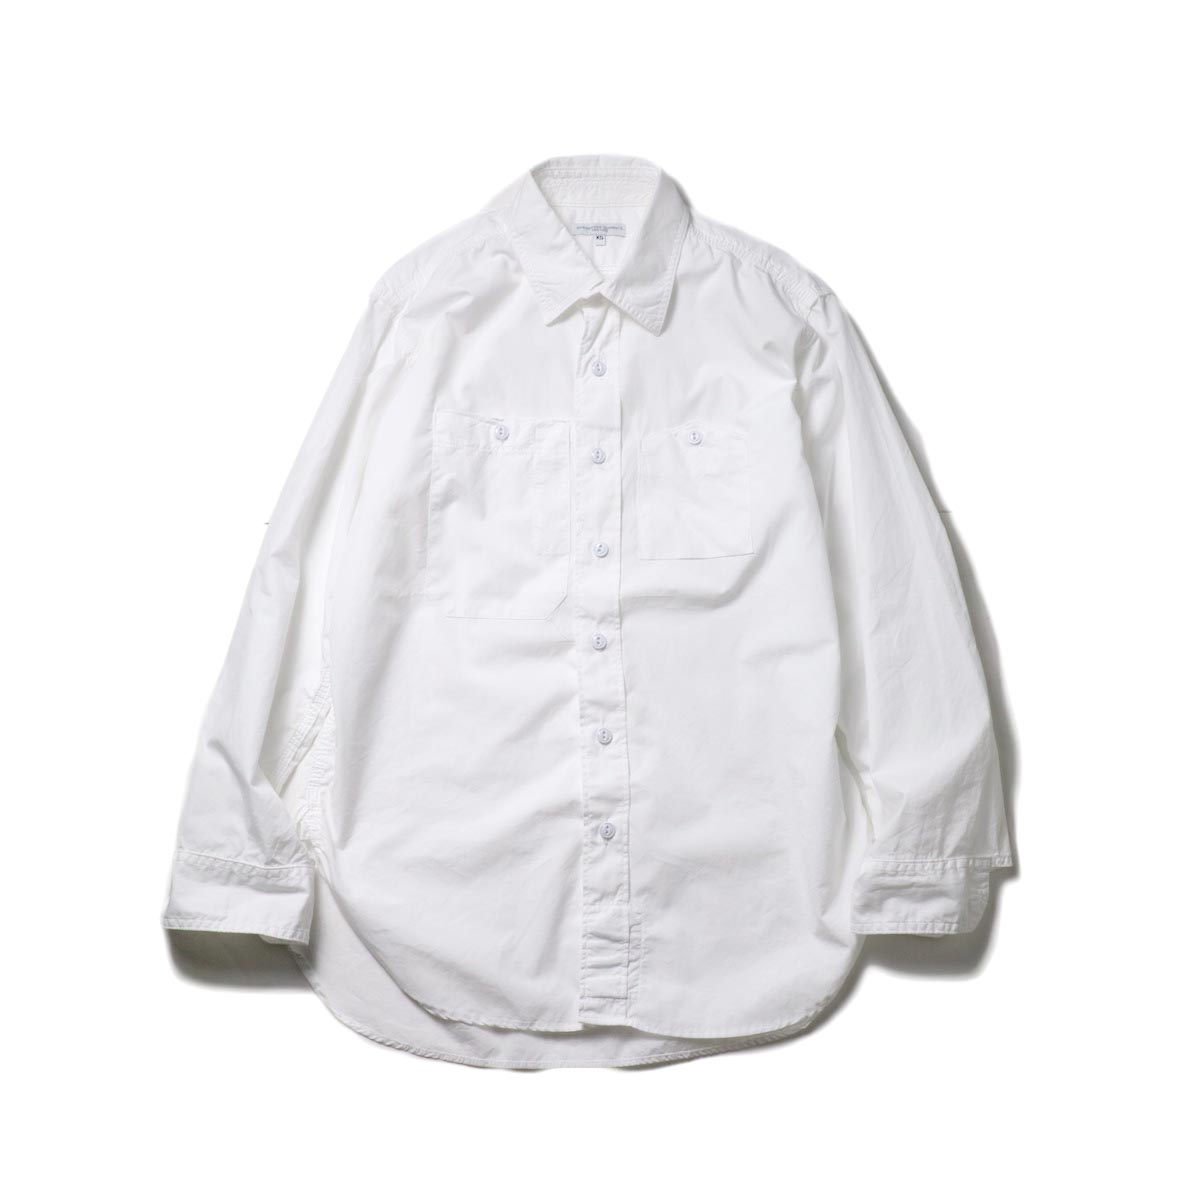 Engineered Garments / Work Shirt -100's 2Ply Broadcloth (White)